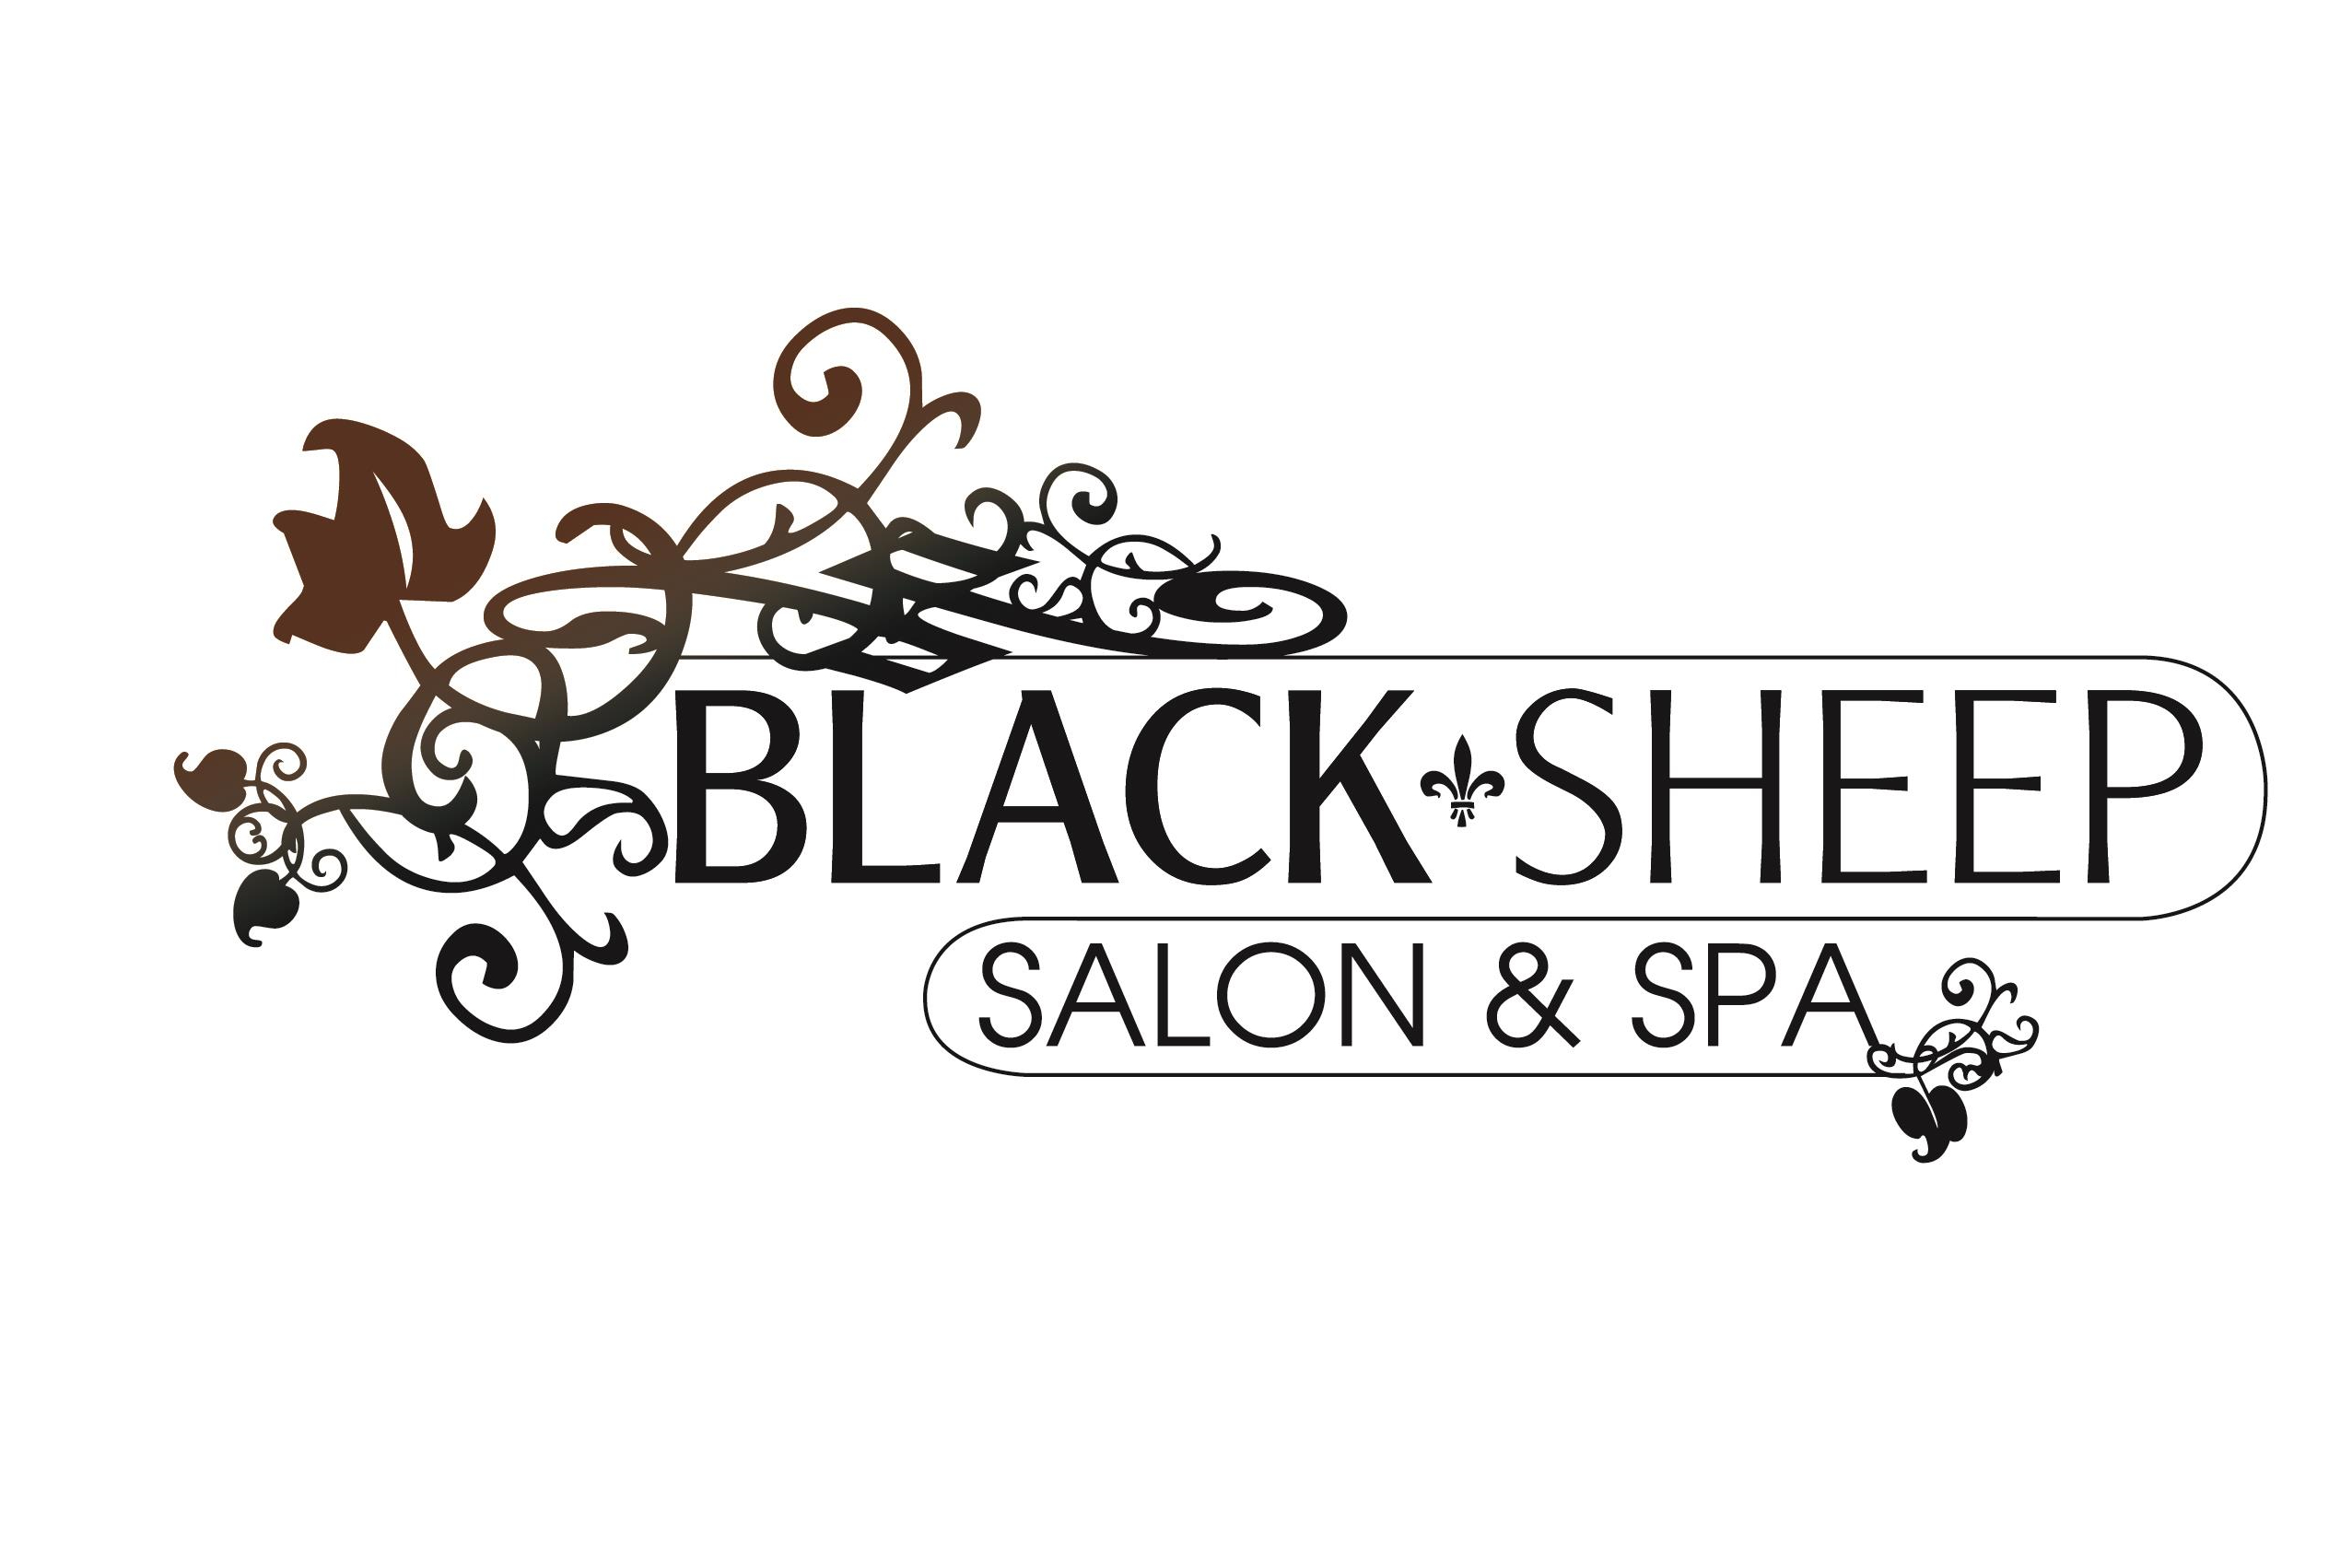 Black sheep salon spa in fayetteville ar vagaro for Abstract salon fayetteville ar